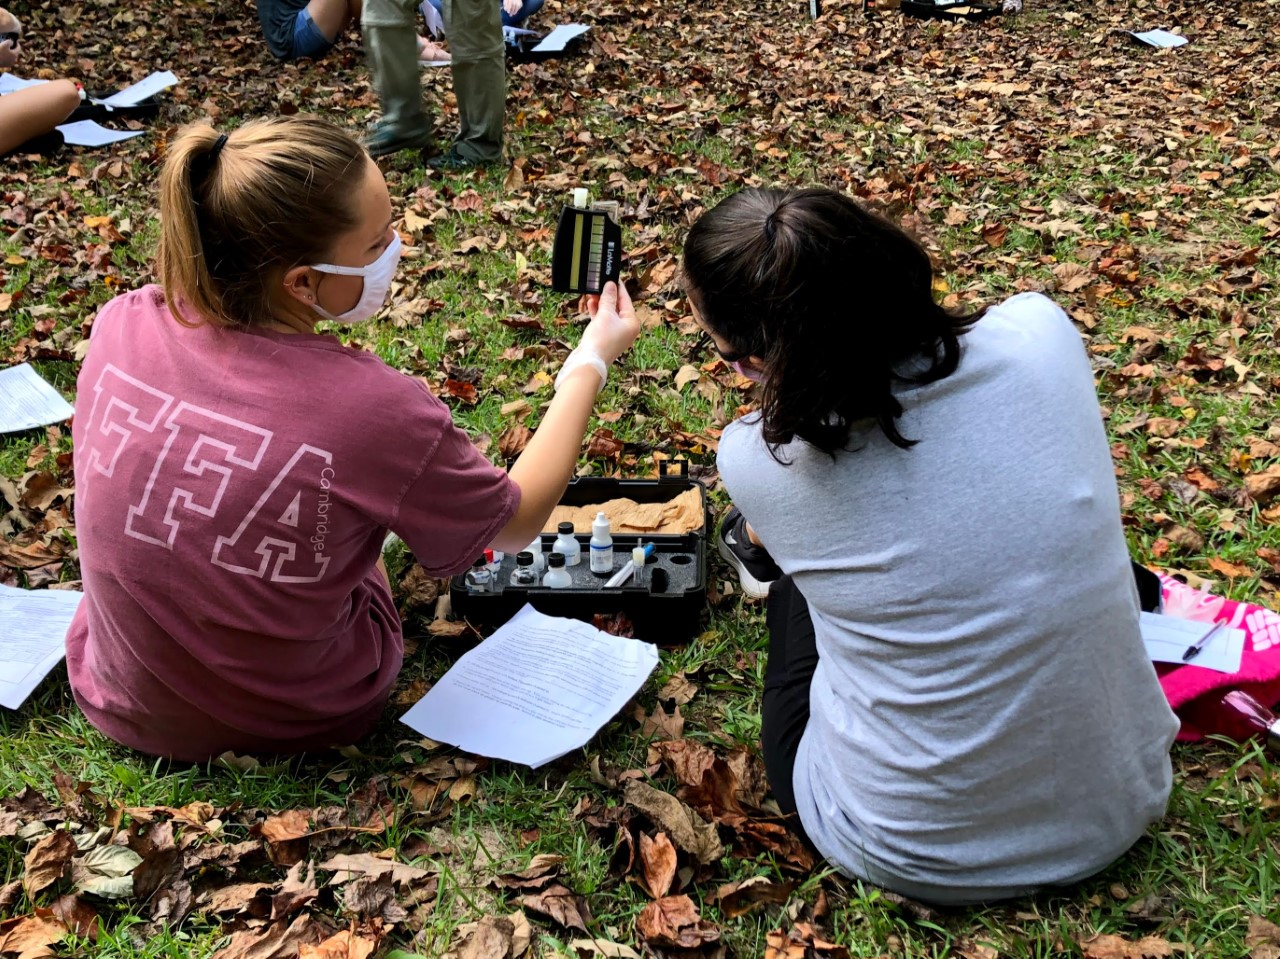 Students tested their knowledge of streams at Champion Creek at Lake Laurel.